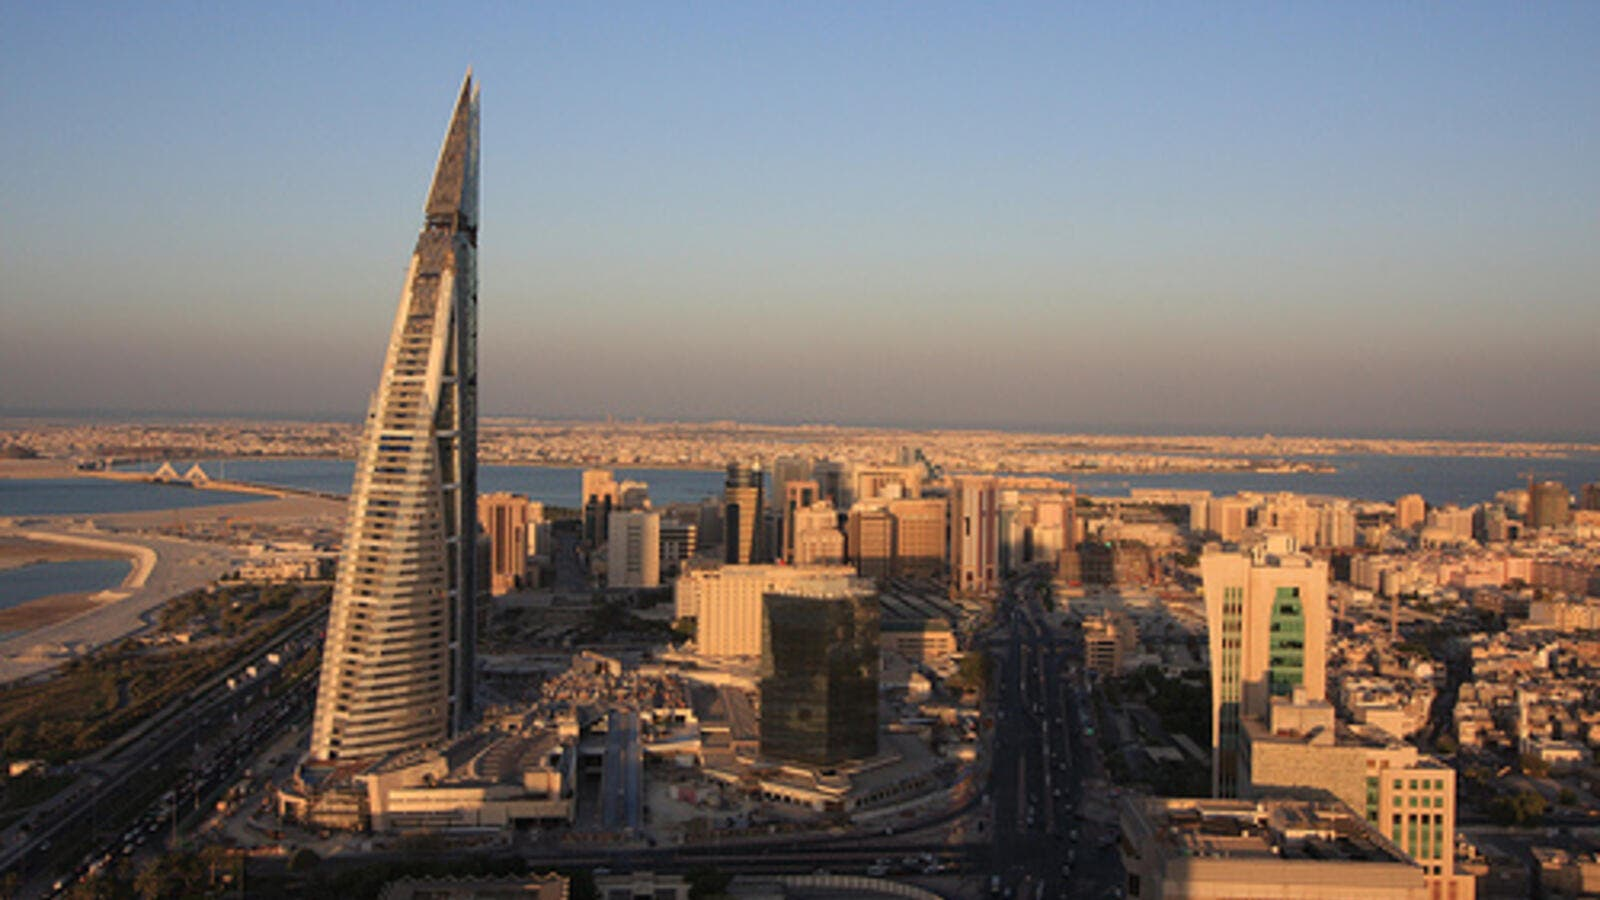 Bahrain's capital has attracted over 10.8 million visitors in 2013 thus far (Courtesy of Arabia 2day)